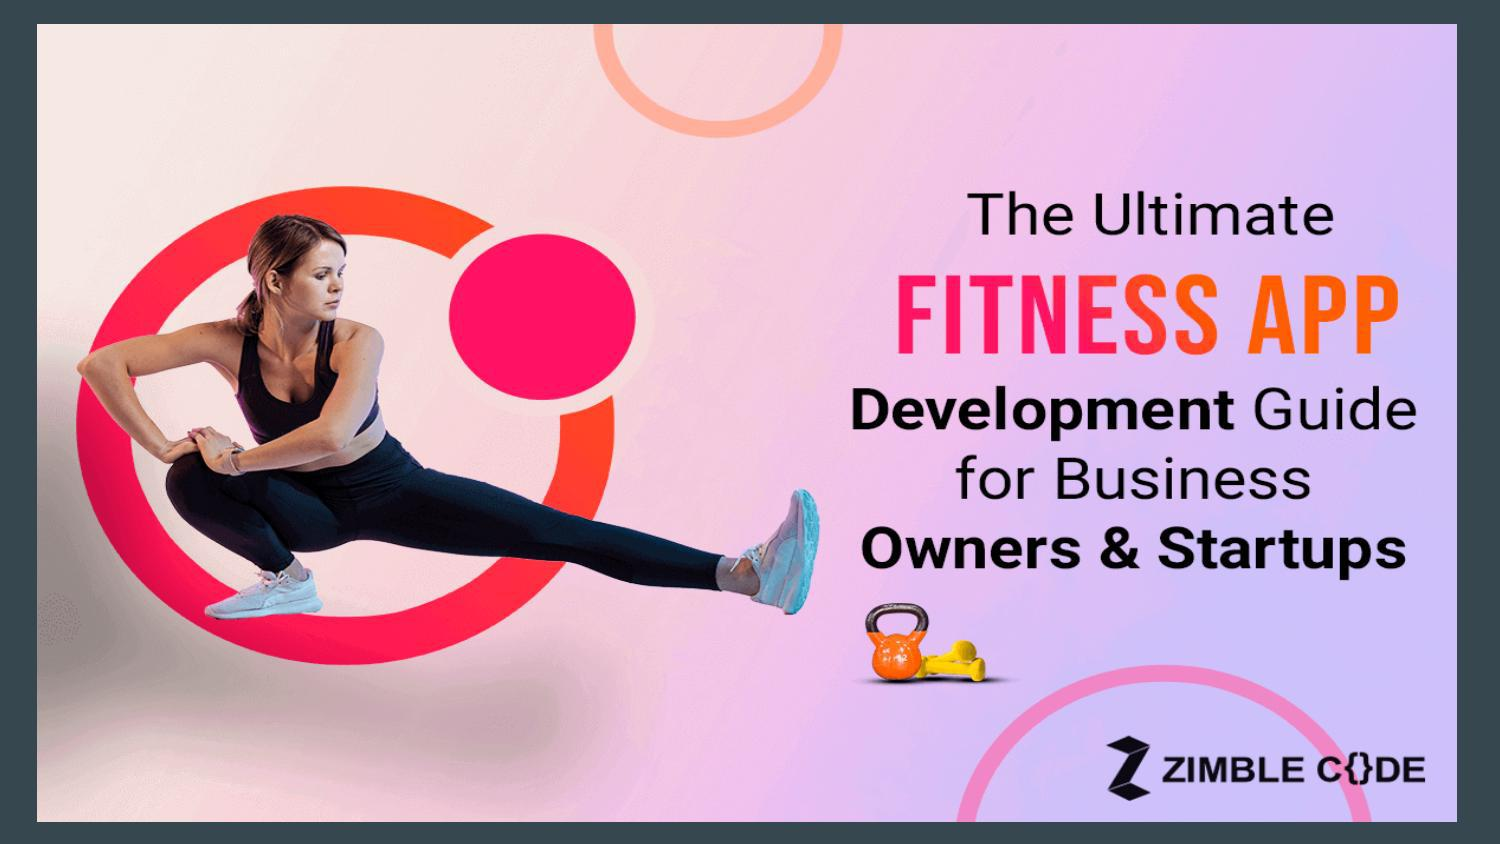 The Ultimate Fitness App Development Guide for Business Owners & Startups